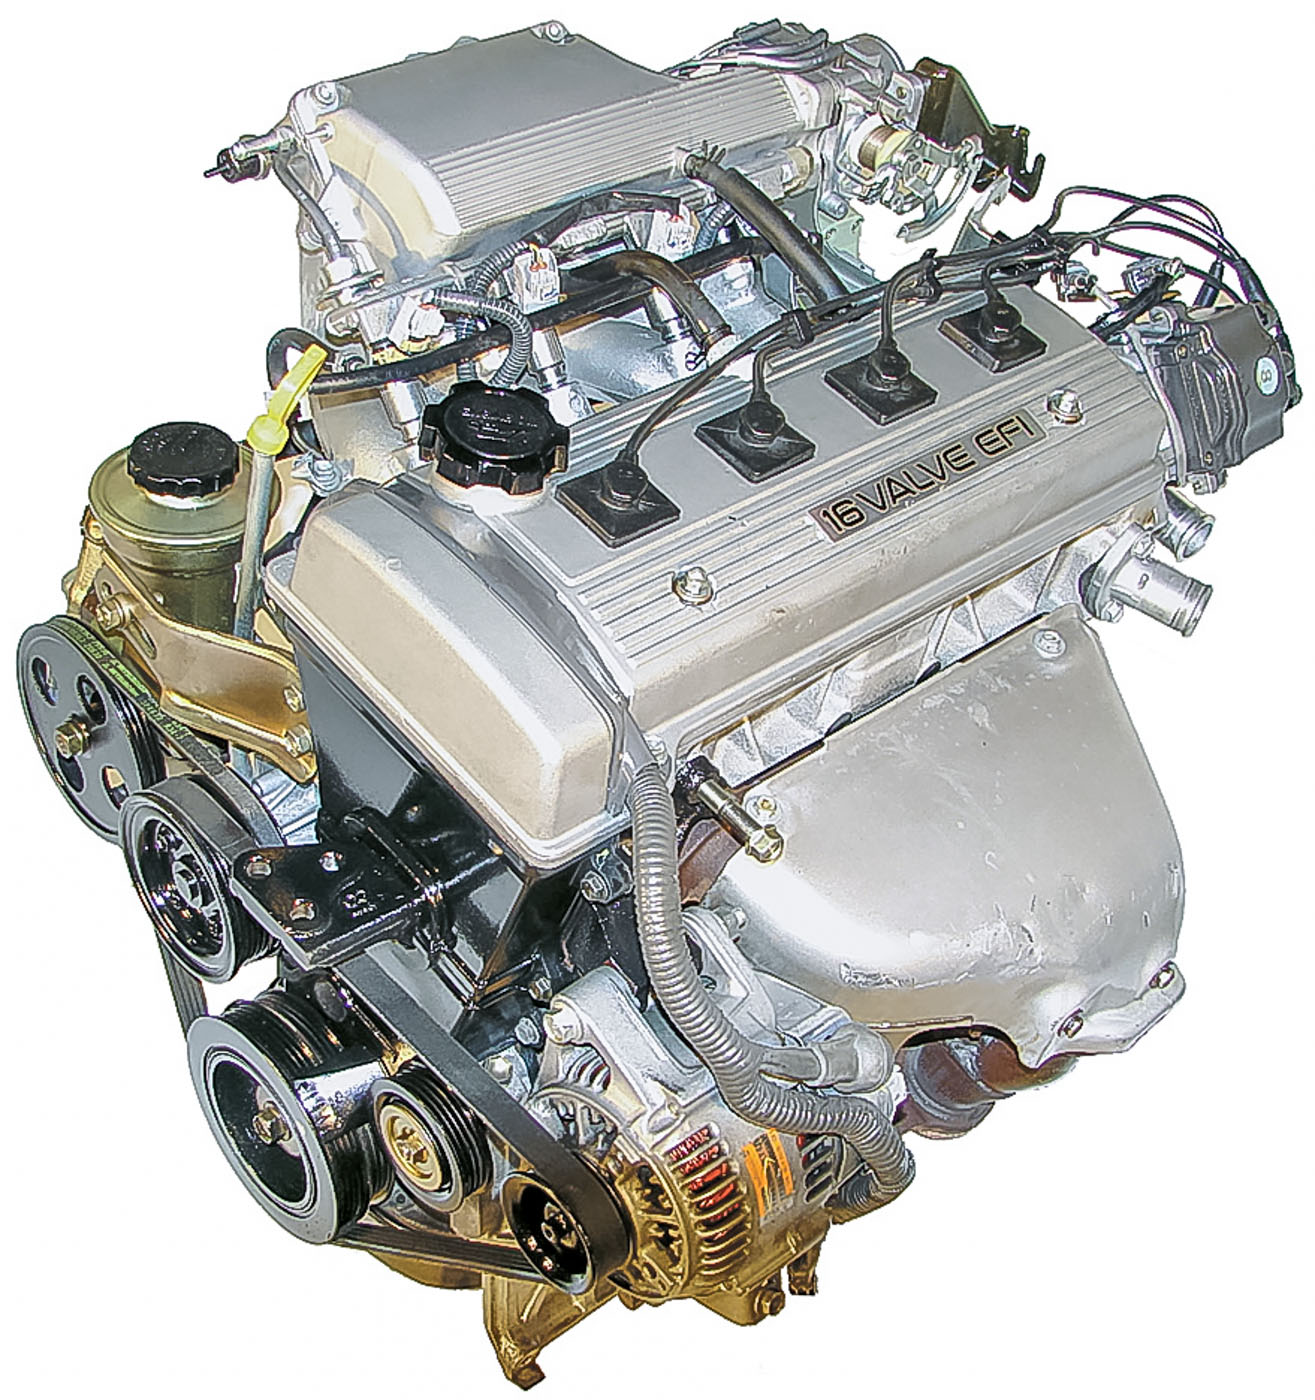 Toyota Afe Engine